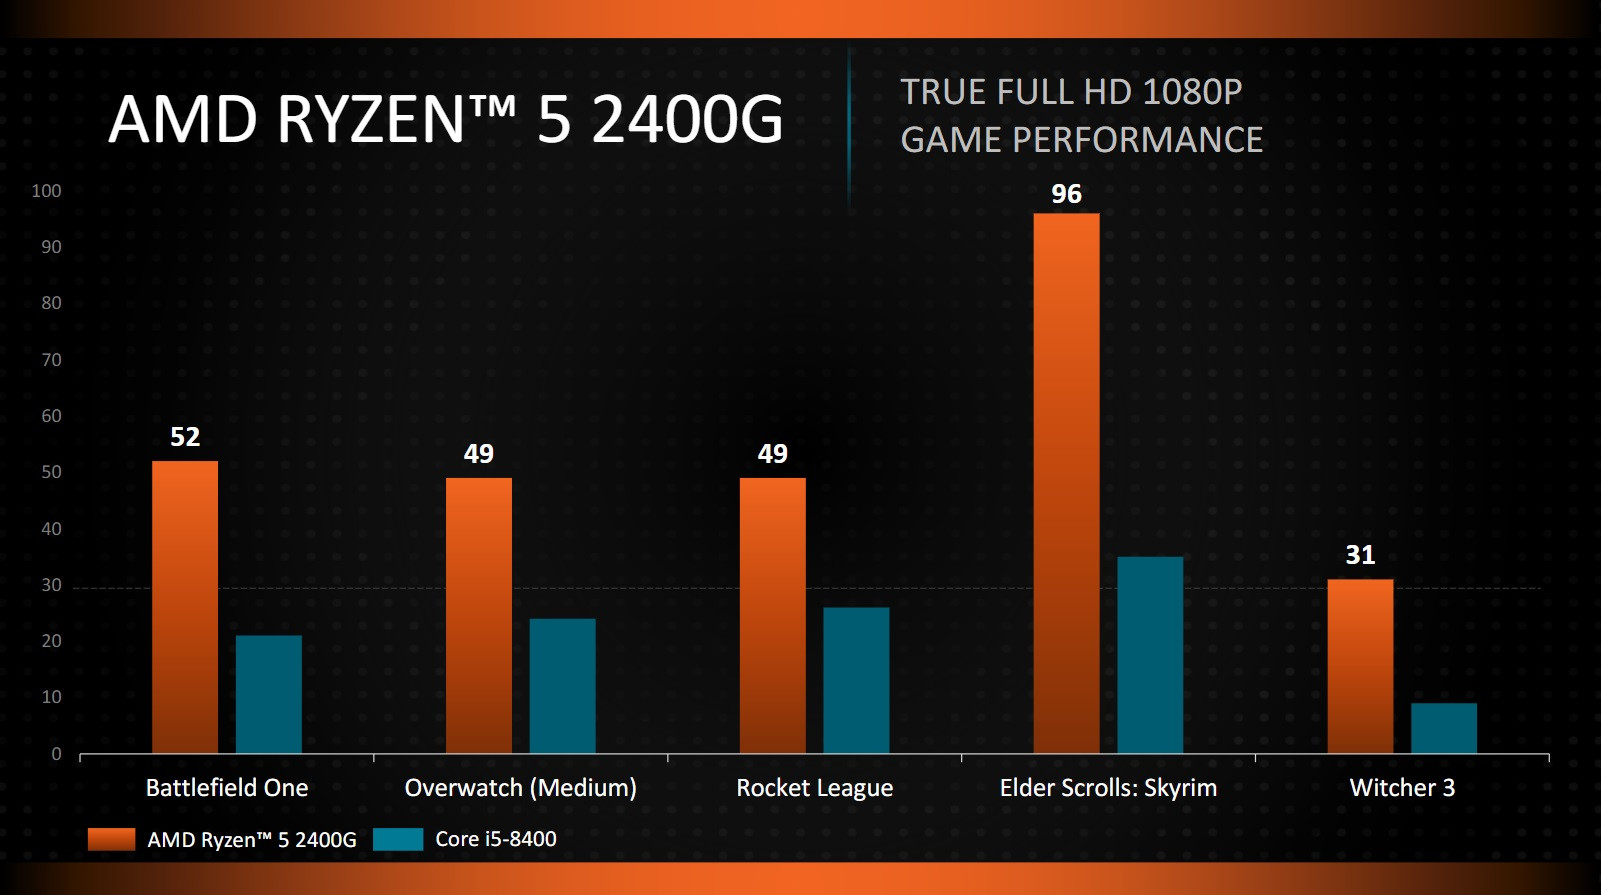 News Posts Matching Ryzen 5 Techpowerup Amd 3 Raven Ridge 2200g 35ghz Up To 37ghz Cache 4mb 65w Am4 Even Taking Into Account Amds Marketing Hyperbole The Radeon Vega 11 Seems Capable Of Running Most Esports Titles At Resolutions Above 1600 X 900